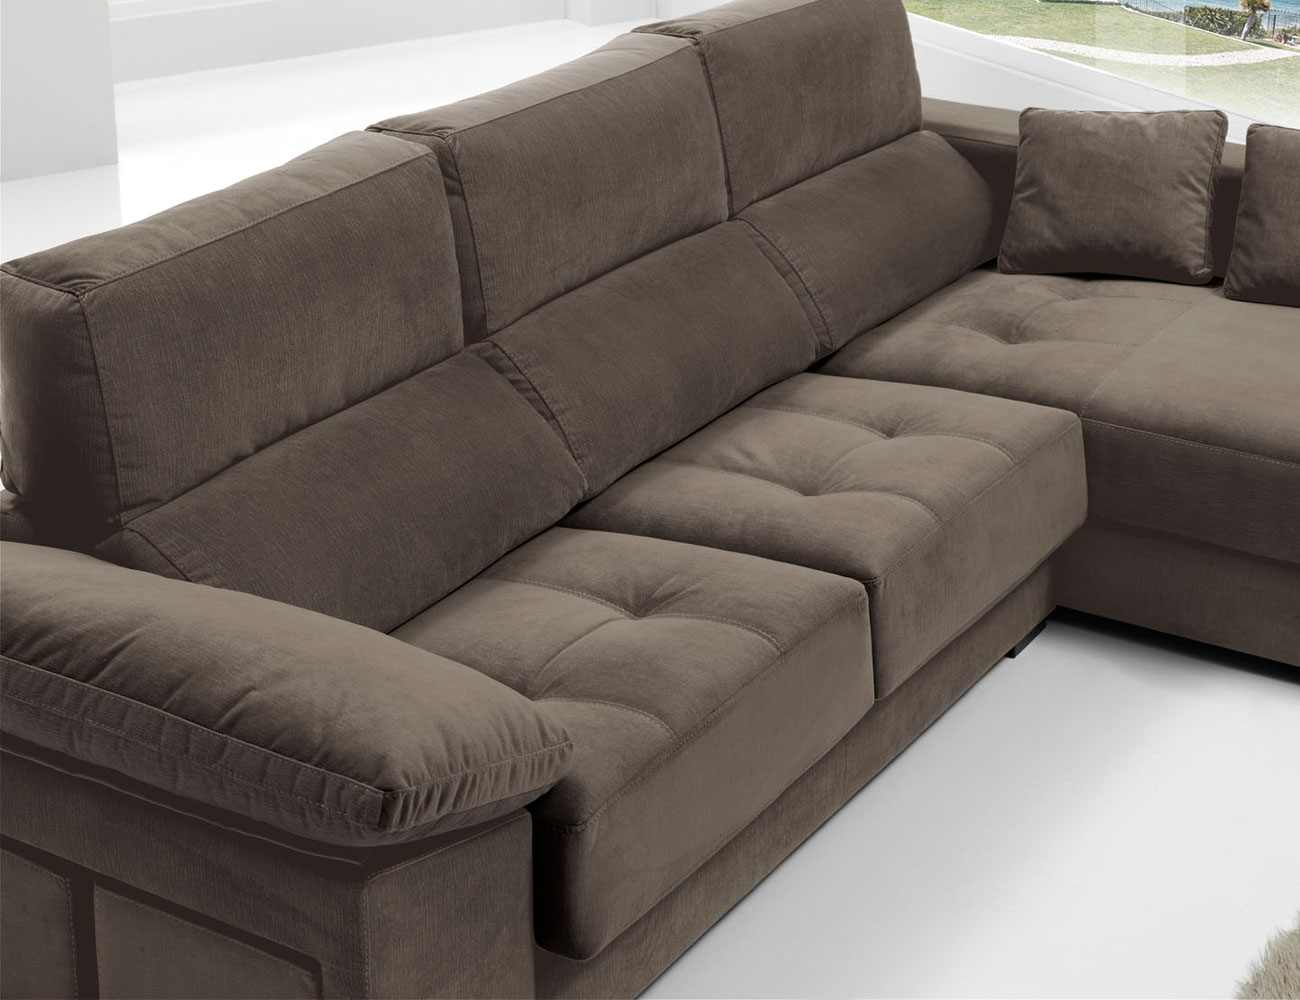 Sofa chaiselongue anti manchas bering pouf 257